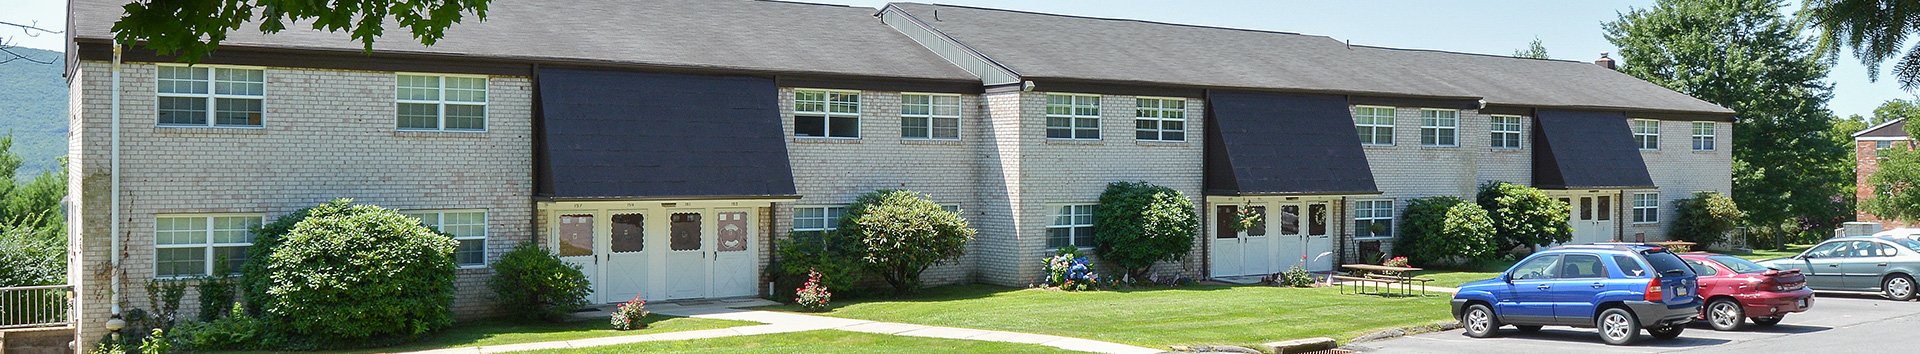 Exterior Side view of Grampian Hills Apartments at Manor Communities, Williamsport/Pennsylvania